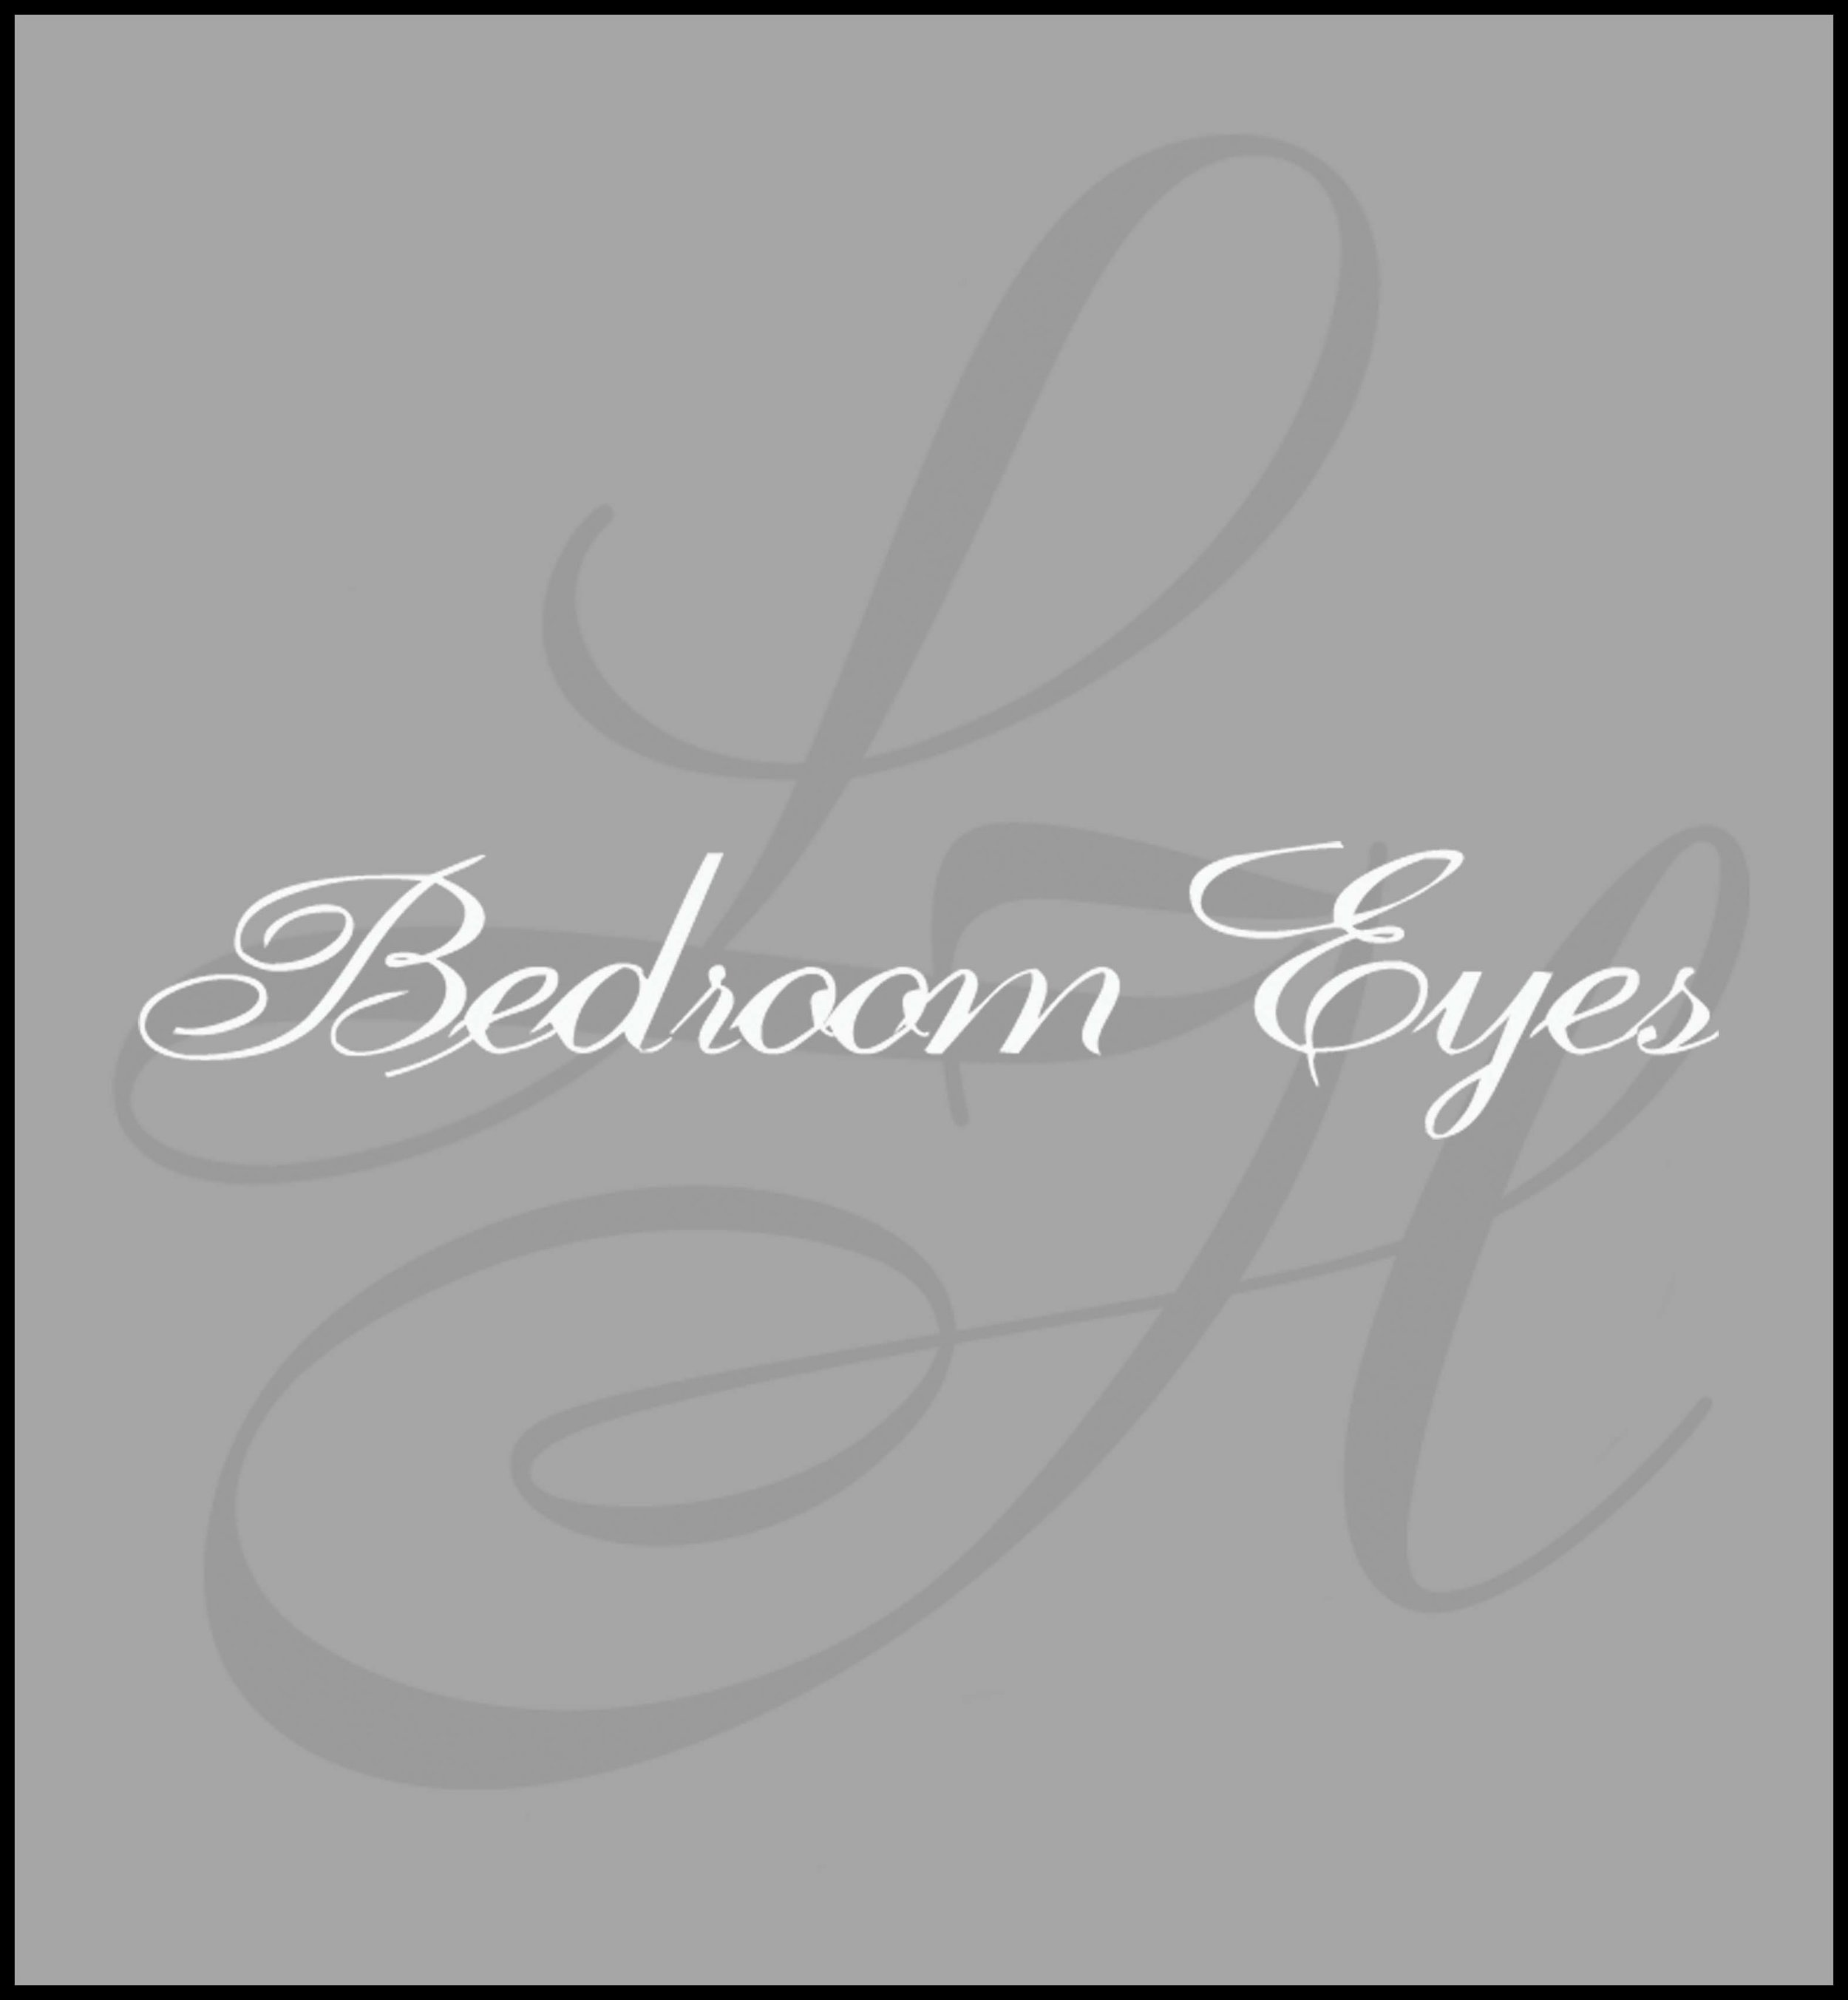 BEDROOM EYES Logo.jpg